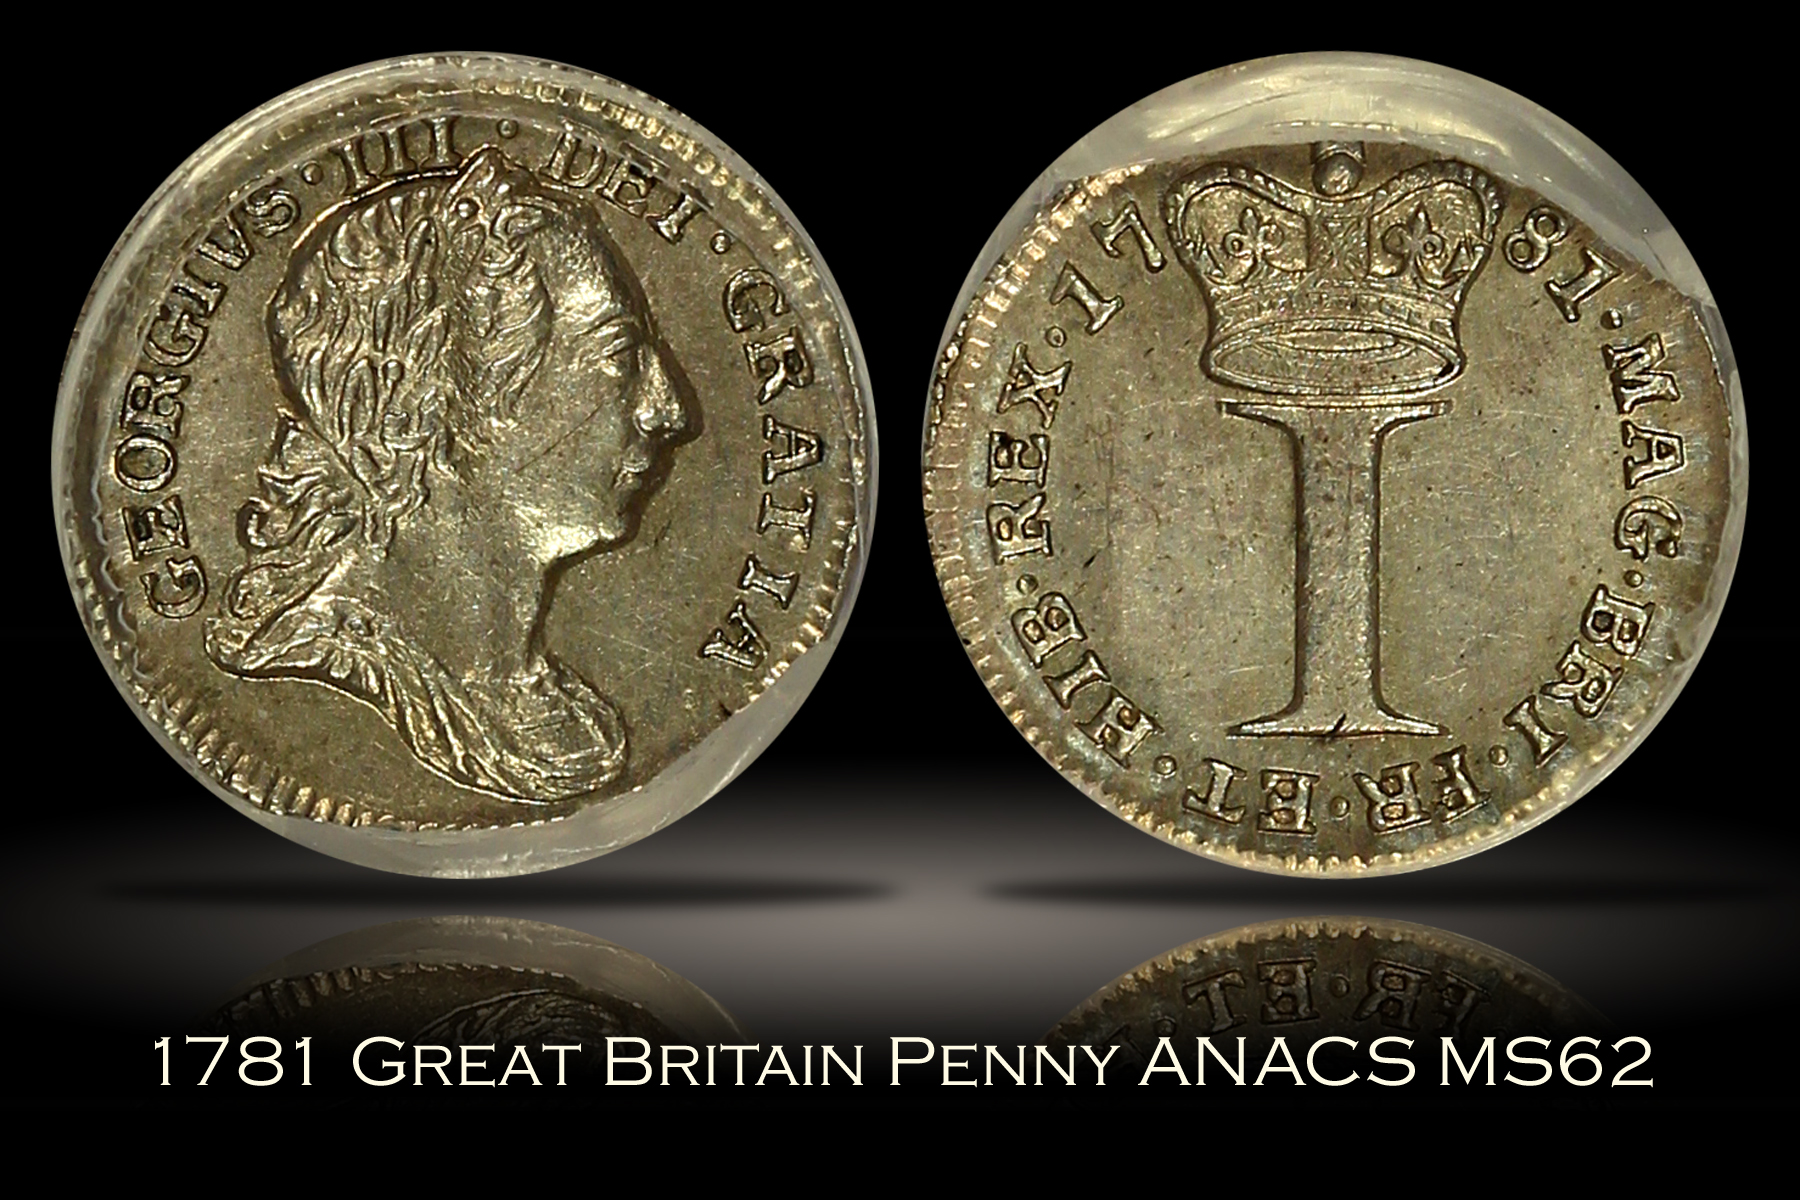 1781 Great Britain Penny ANACS MS62